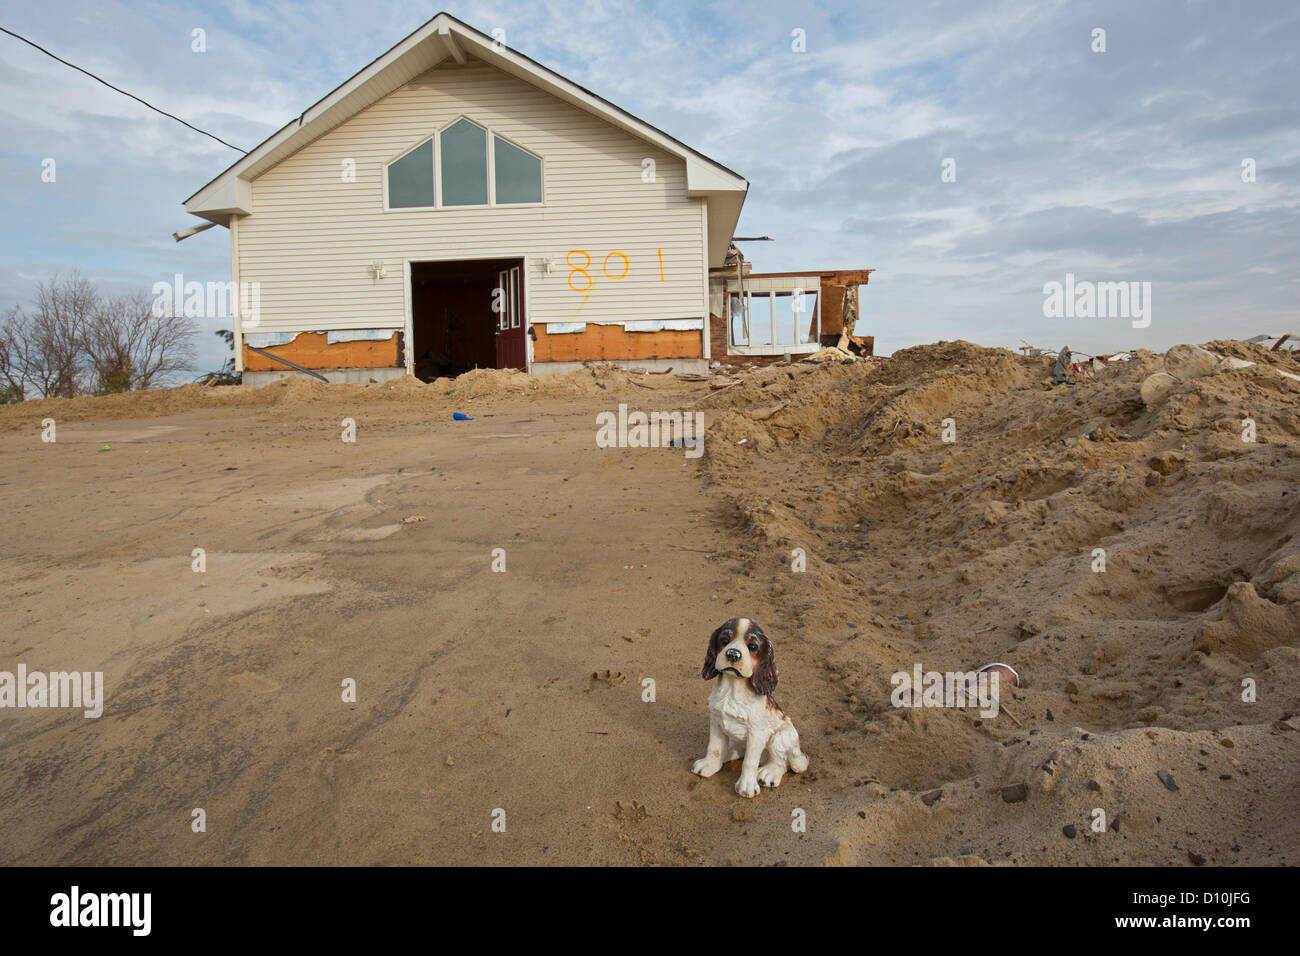 Union Beach, New Jersey - A house on the New Jersey shore severly damaged by Hurricane Sandy. - Stock Image